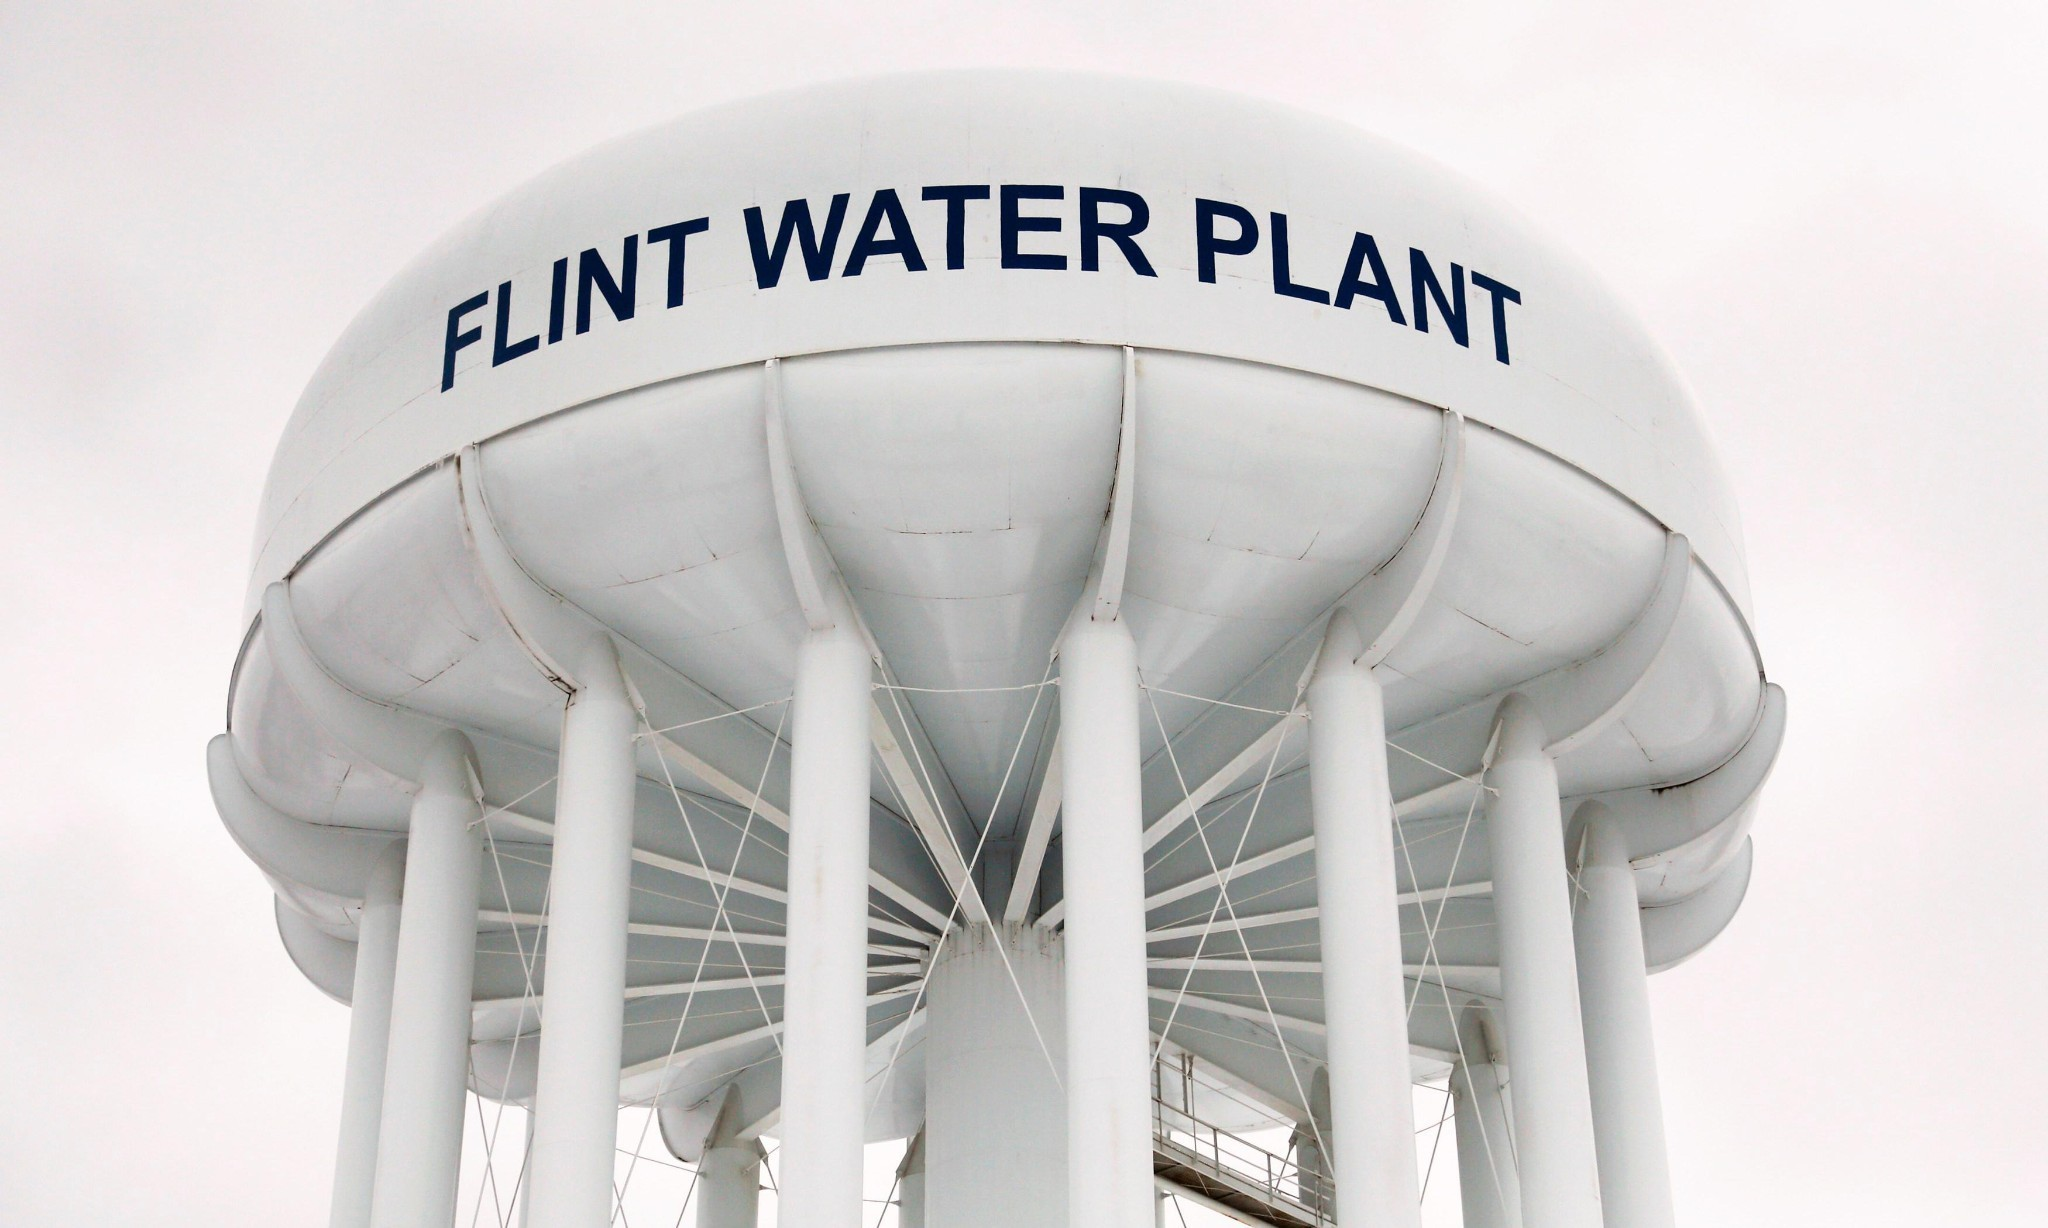 Michigan sues companies for allowing Flint water crisis to 'occur and worsen'